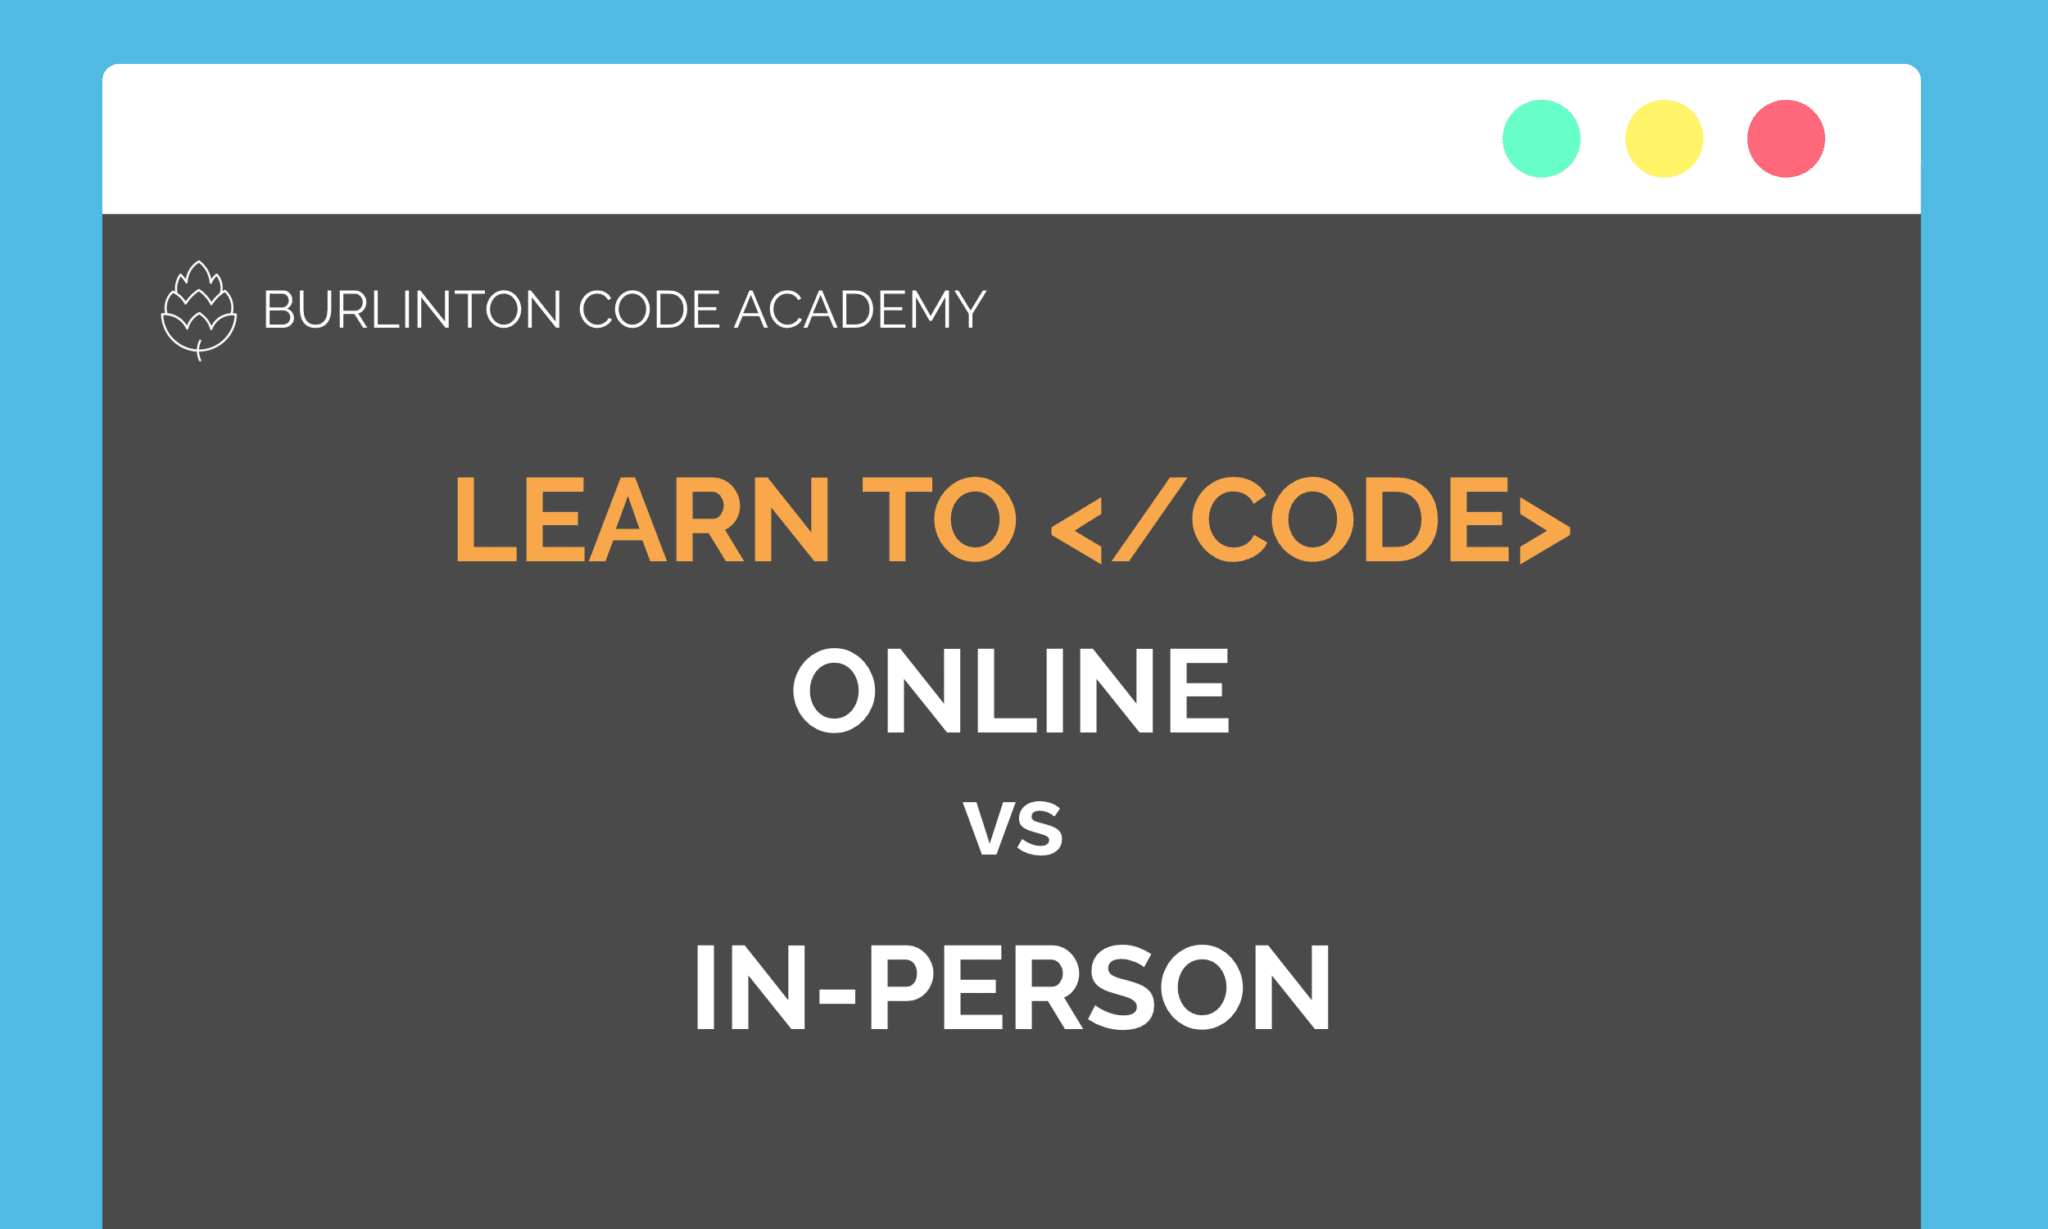 LEARN TO CODE ONLINE VS IN-PERSON